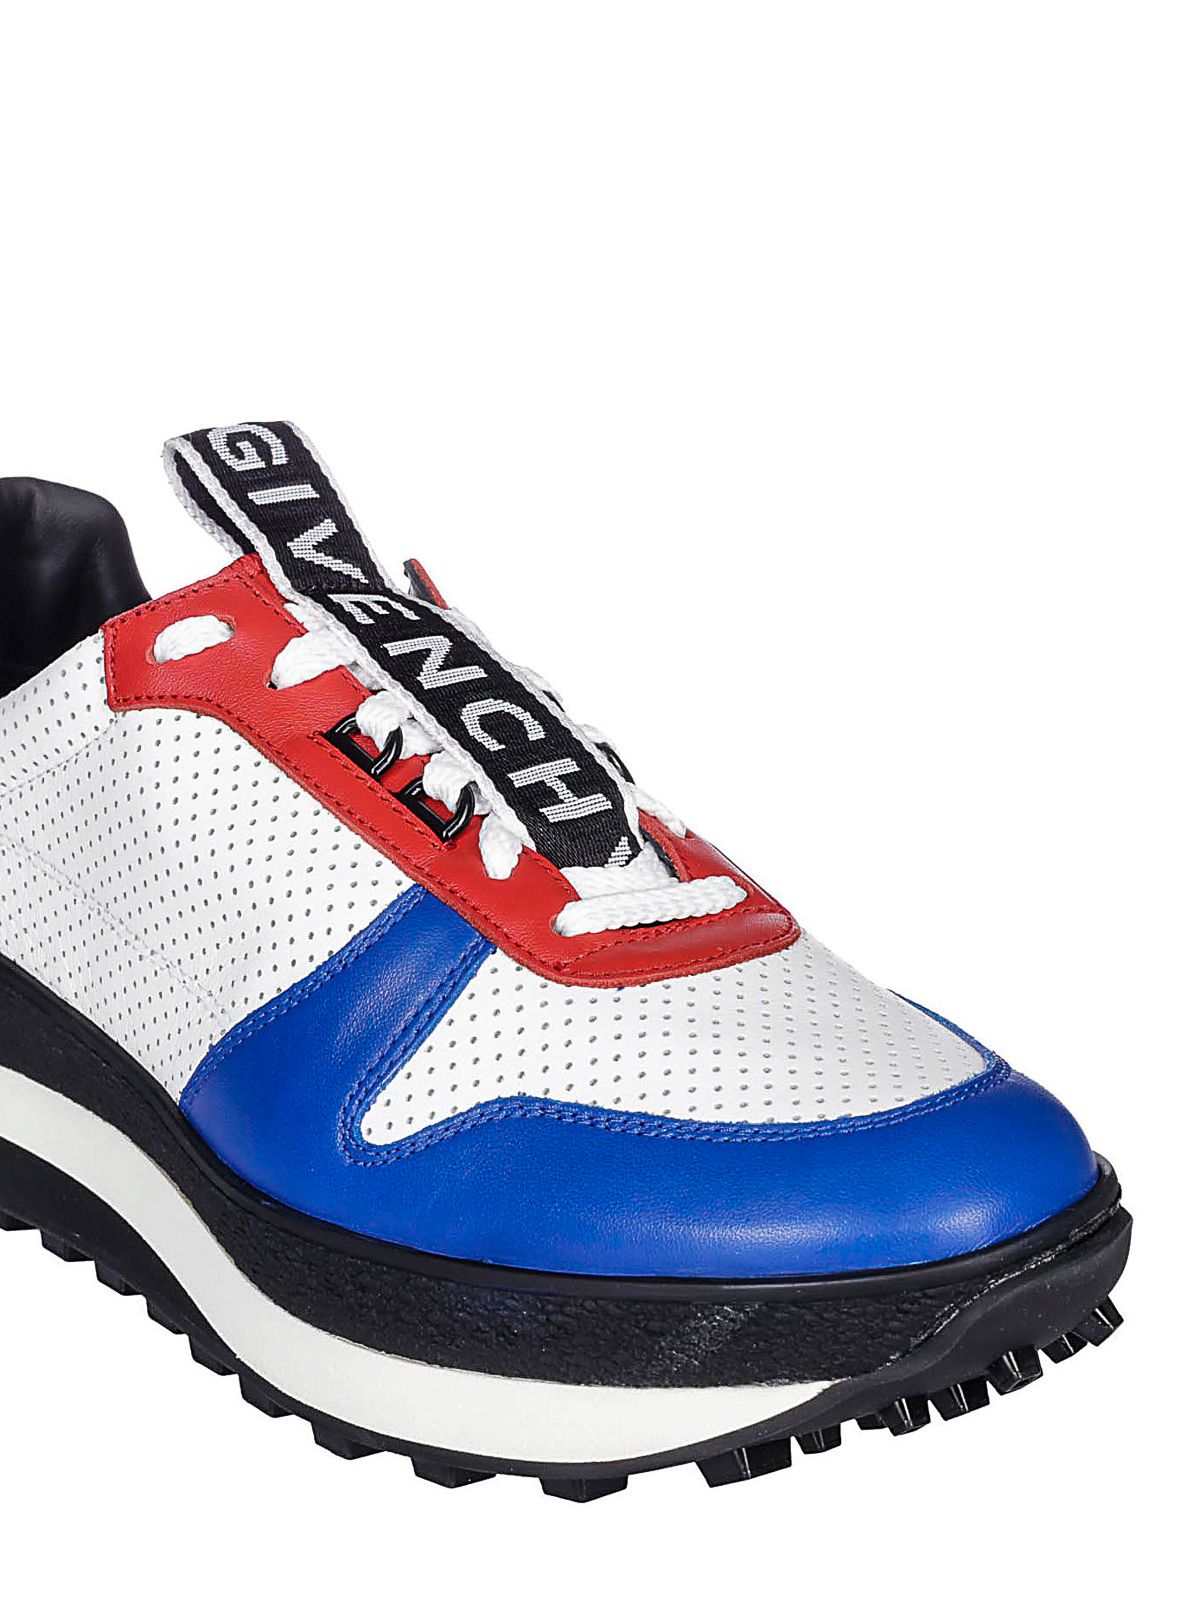 givenchy tr3 sneakers off 53% - www